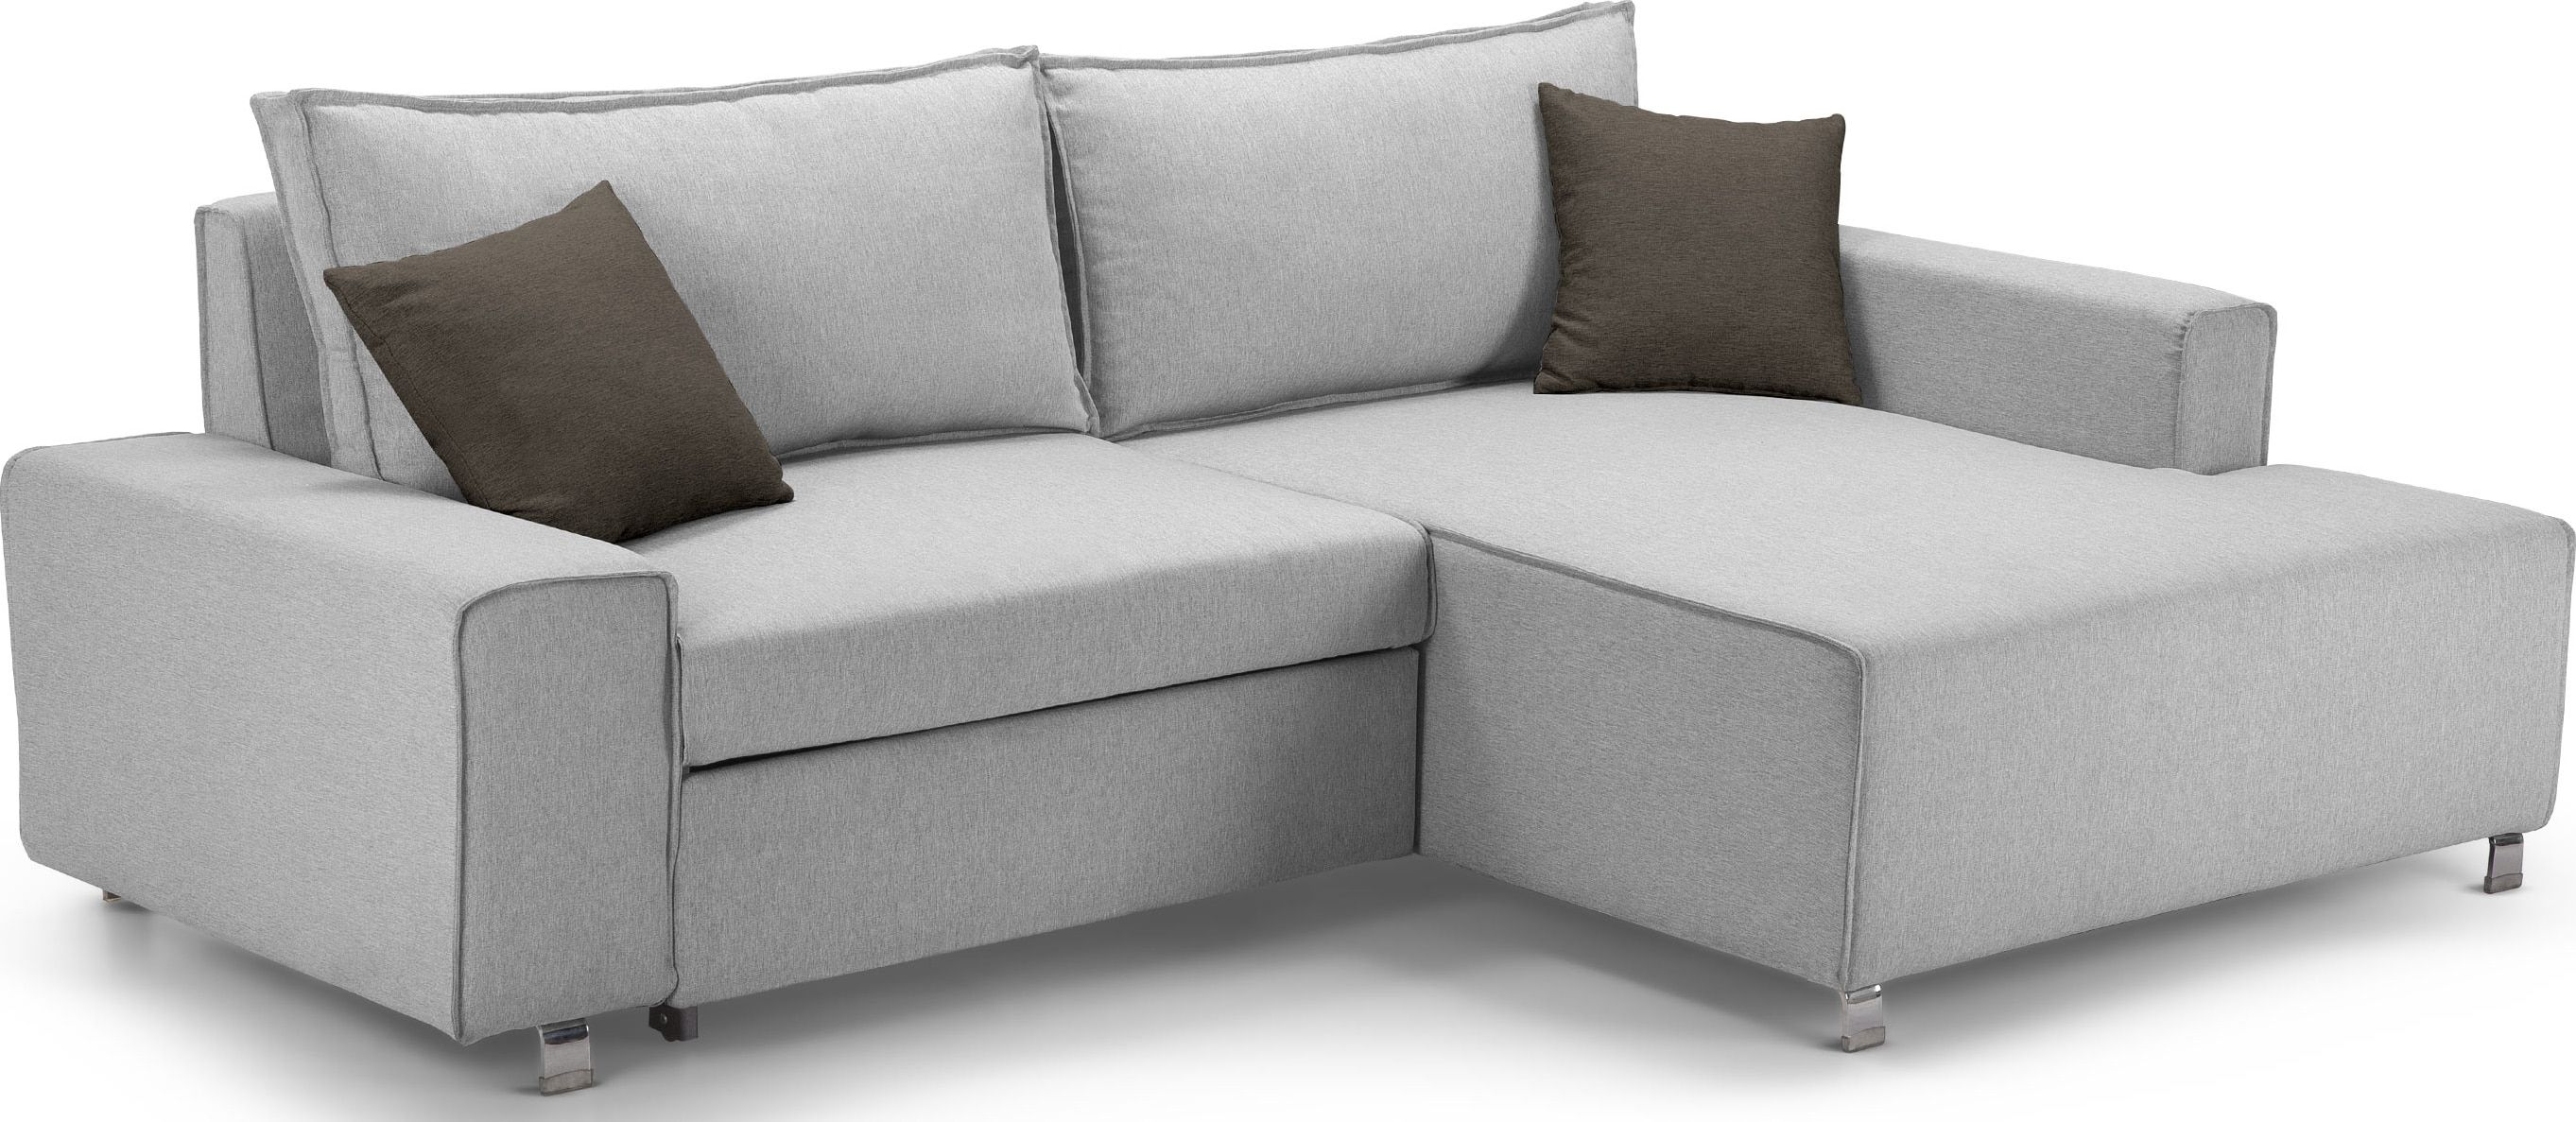 Sofa Bed Express Delivery Mayne Right Hand Facing Corner Sofa Bed Clear Grey Stone